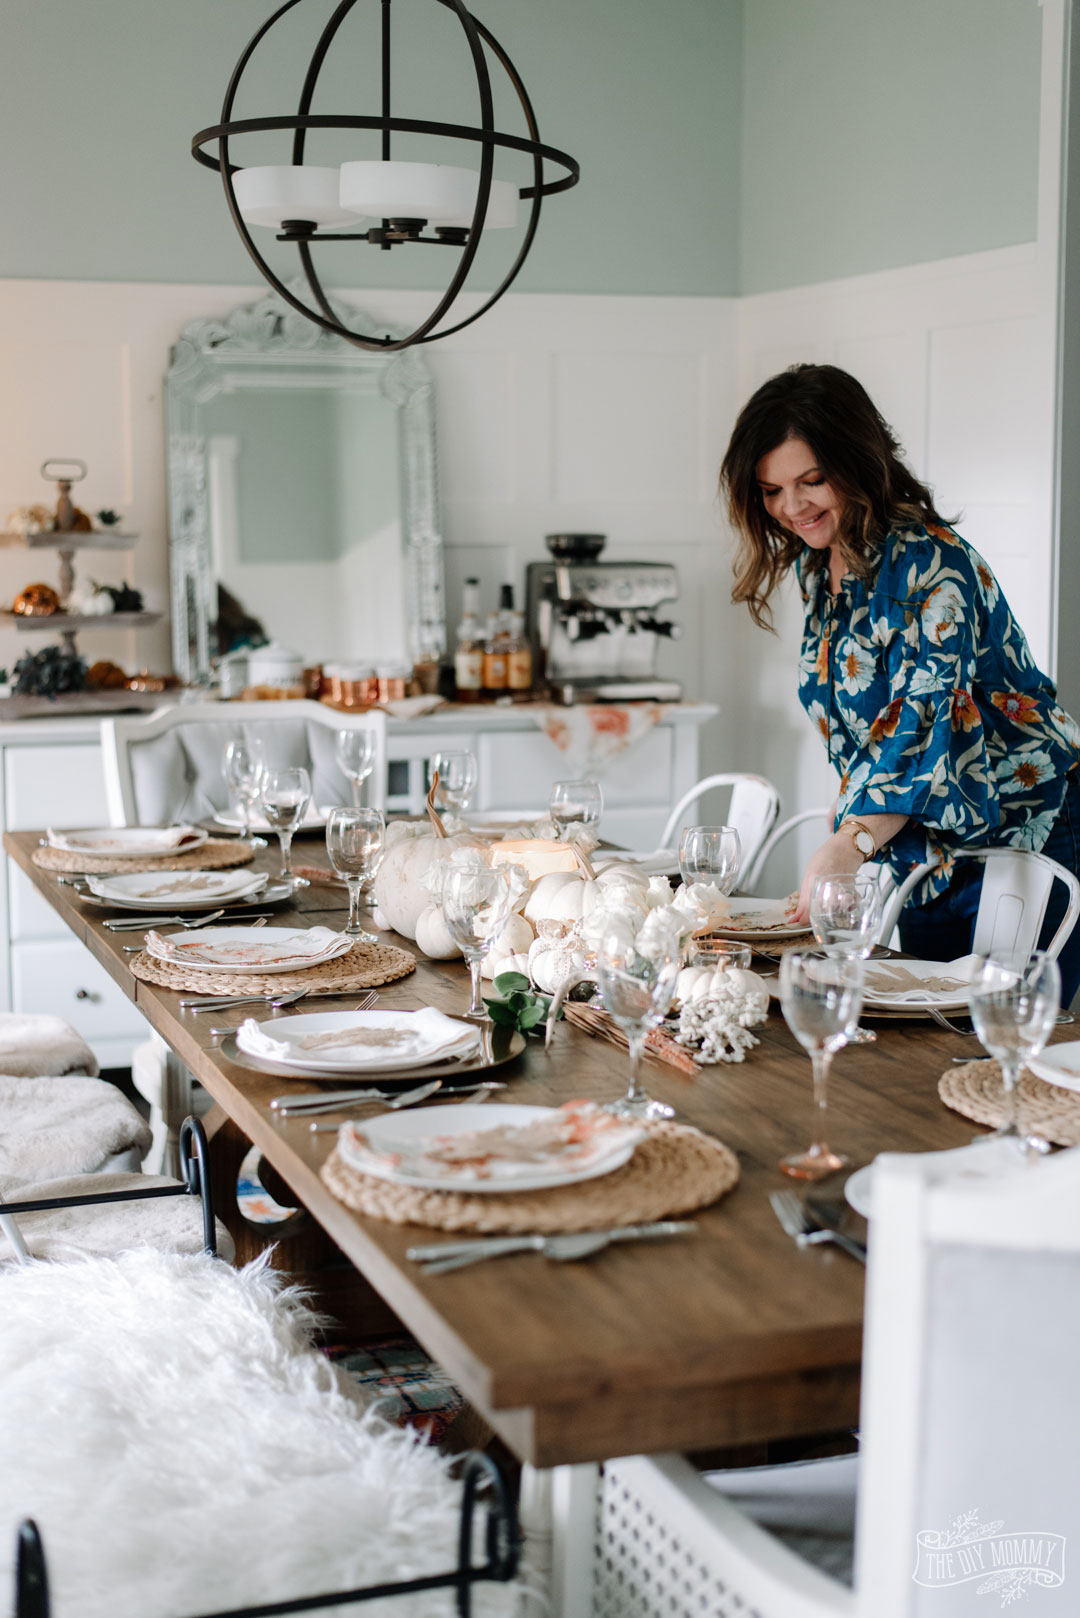 Elegant, romantic Thanksgiving tablescape idea for 12 in whites, creams and a mix and match style